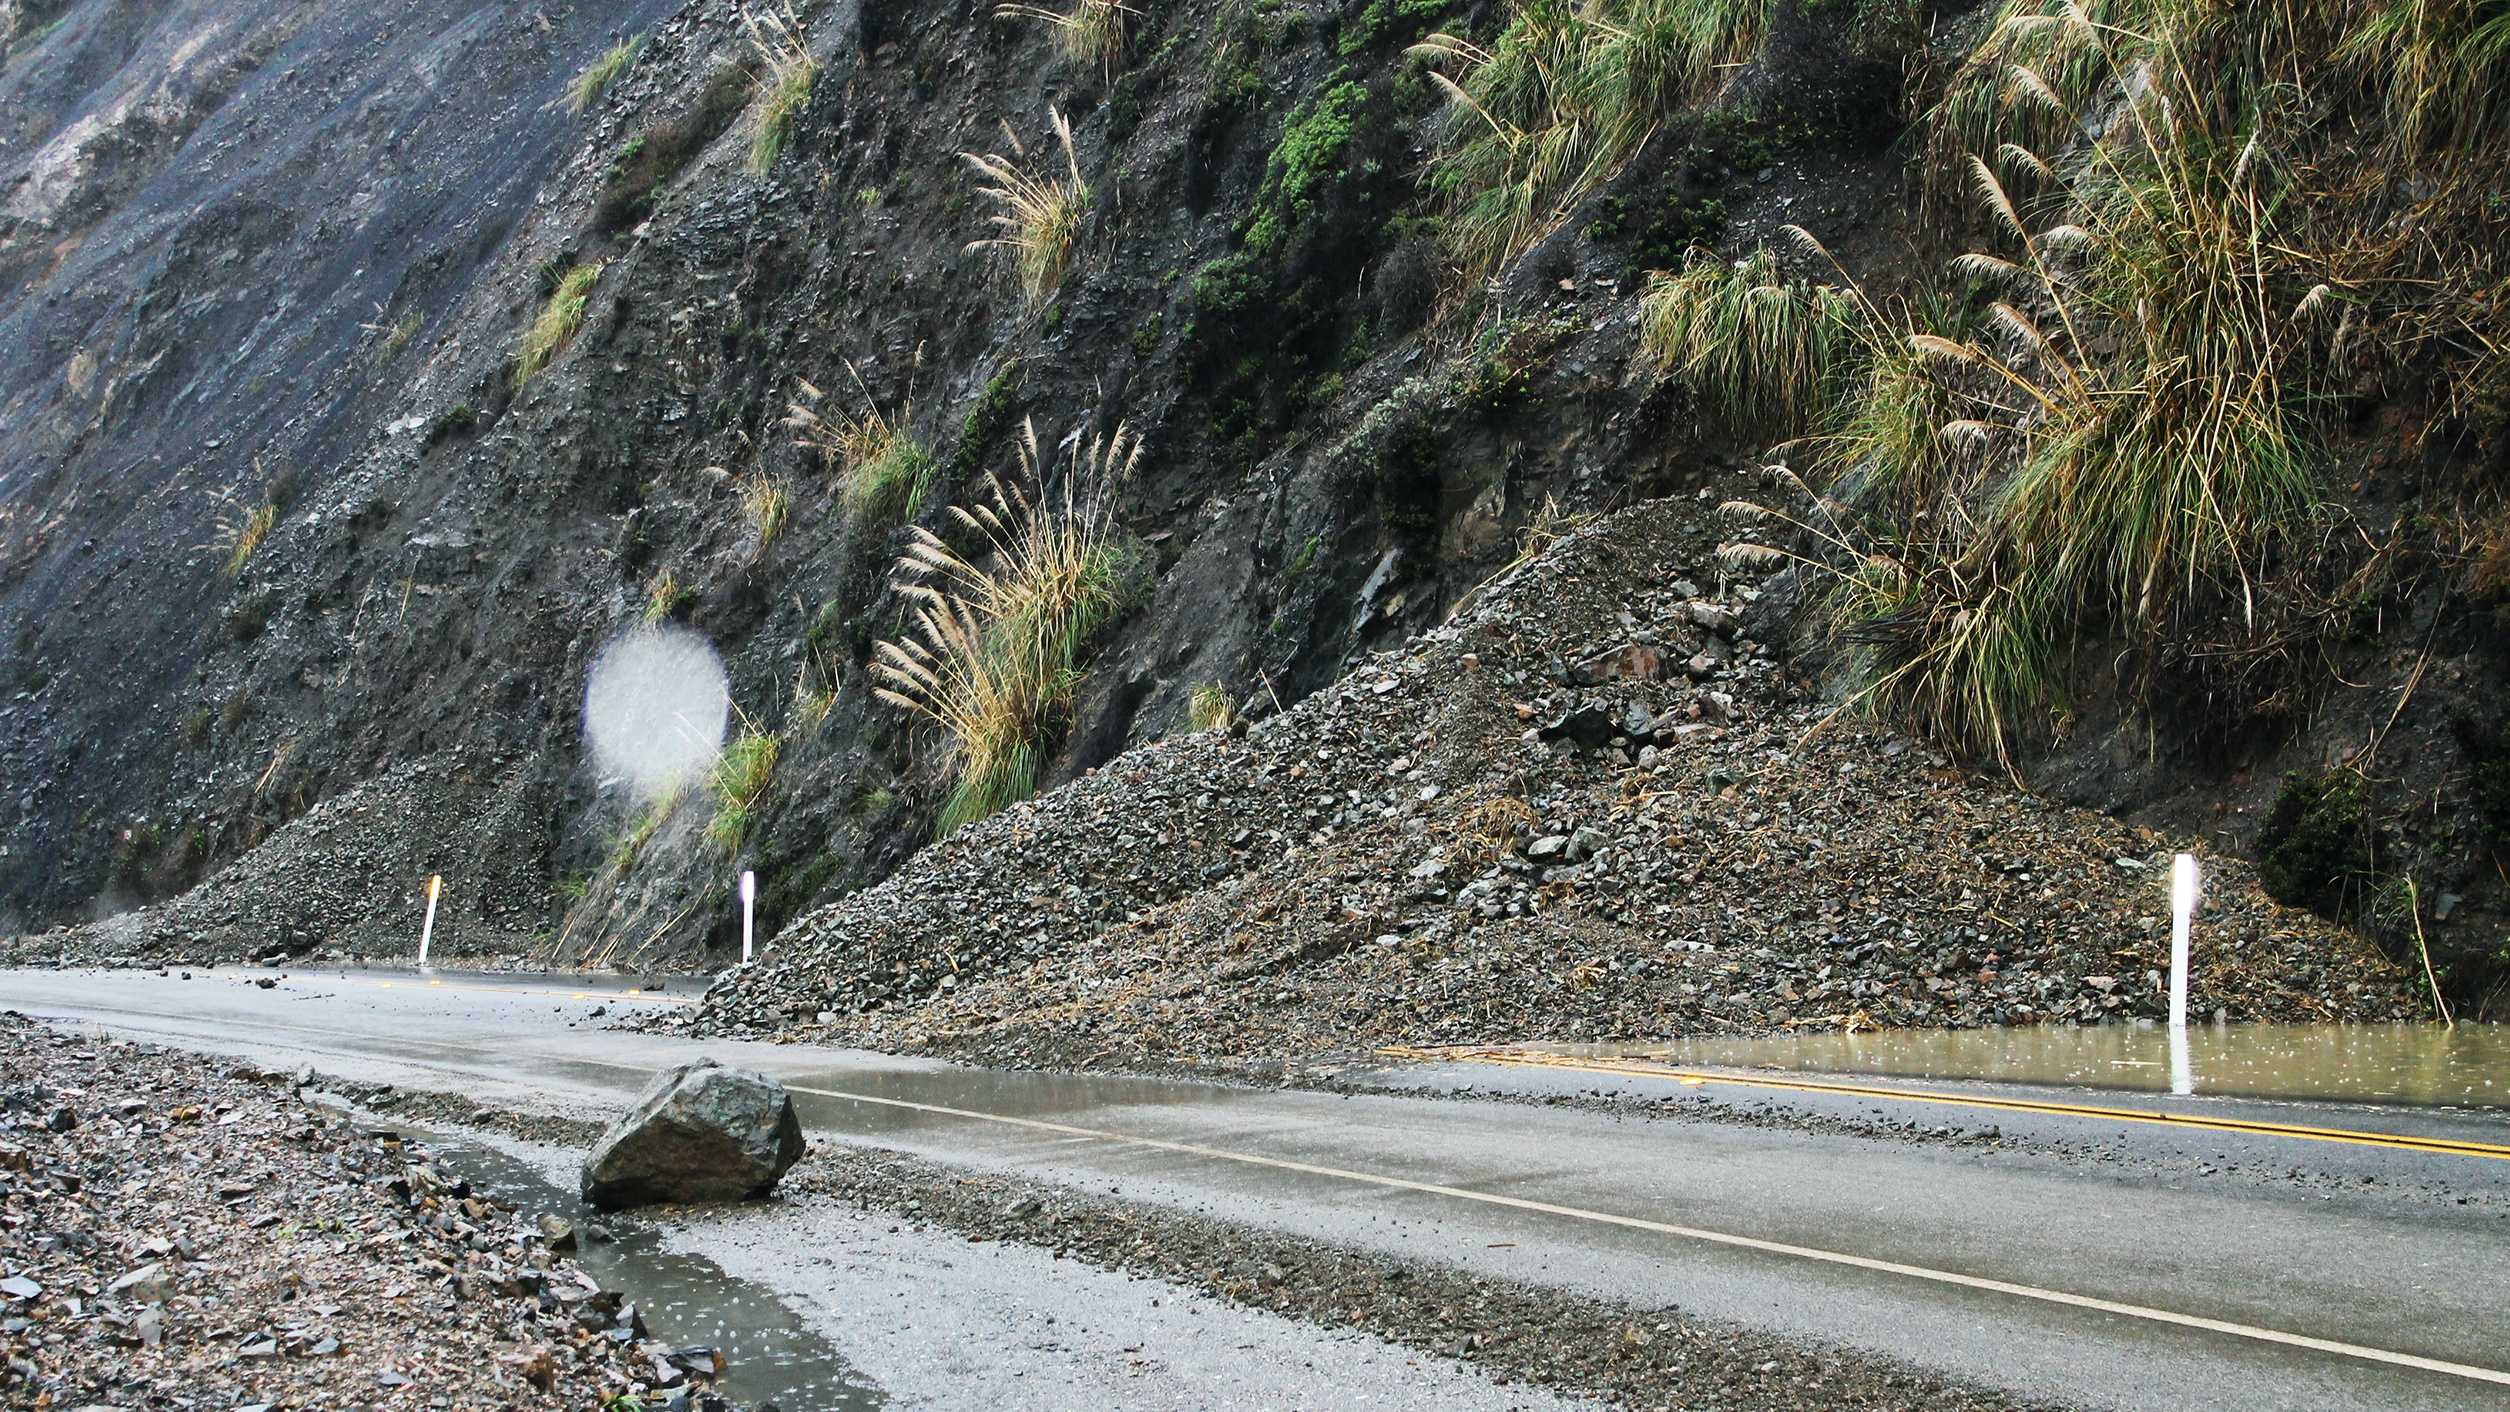 Highway 1 rock slide south of Big Sur